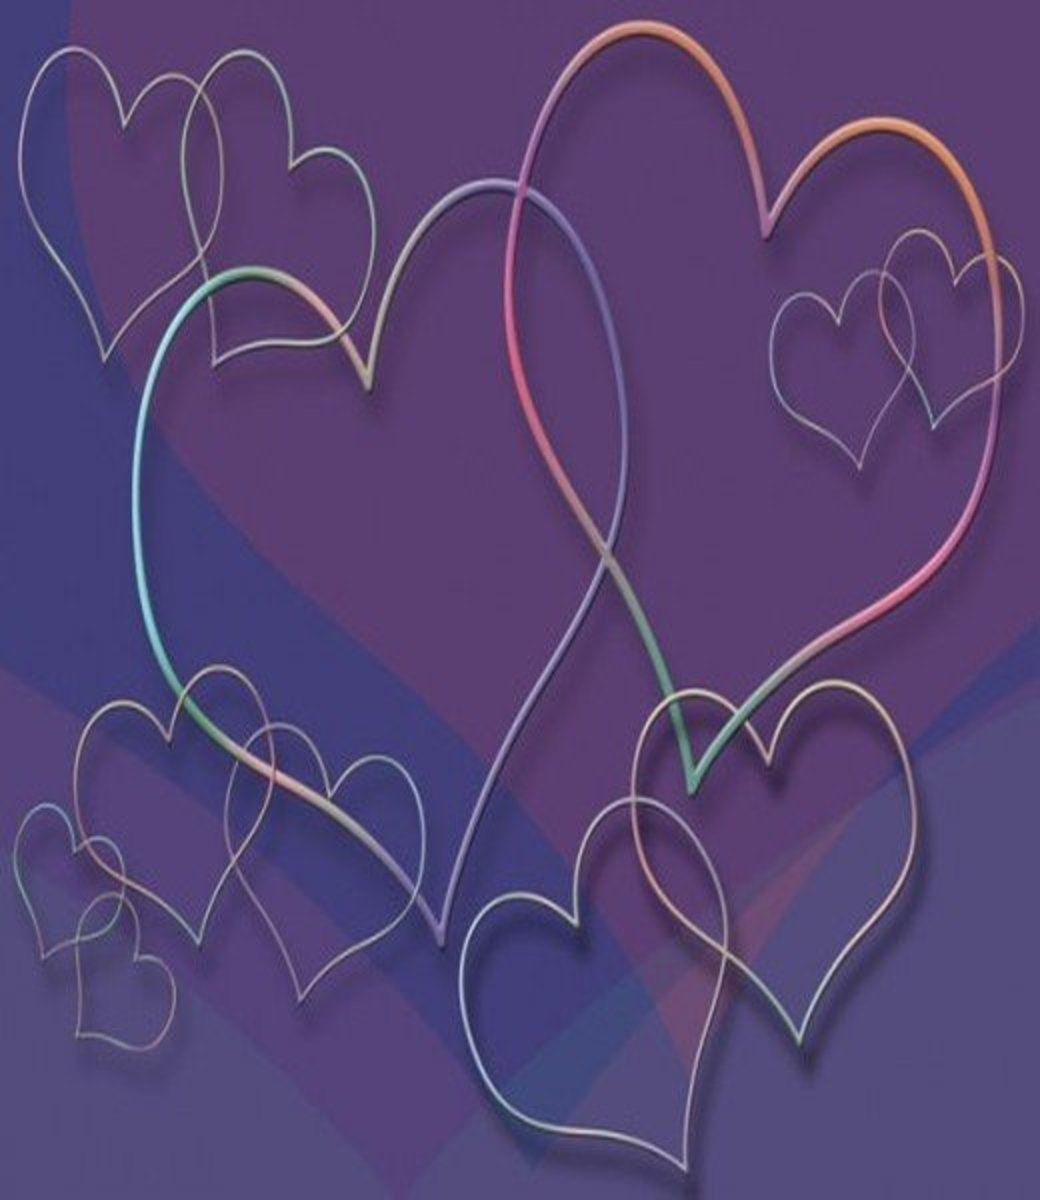 Images of Hearts